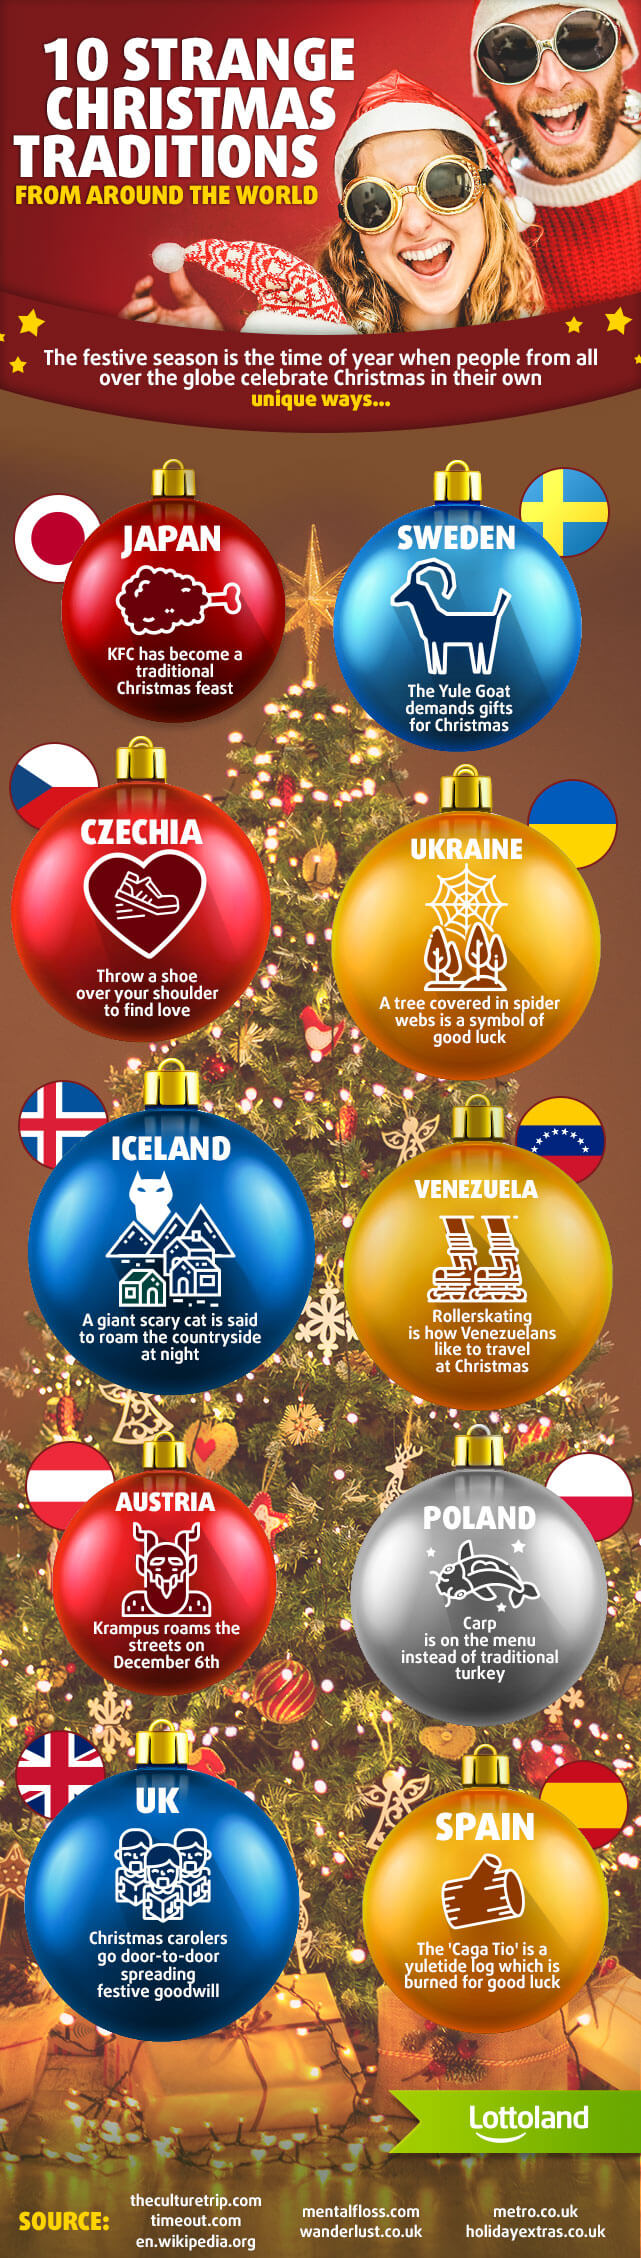 Infographic about weird Christmas traditions from around the world